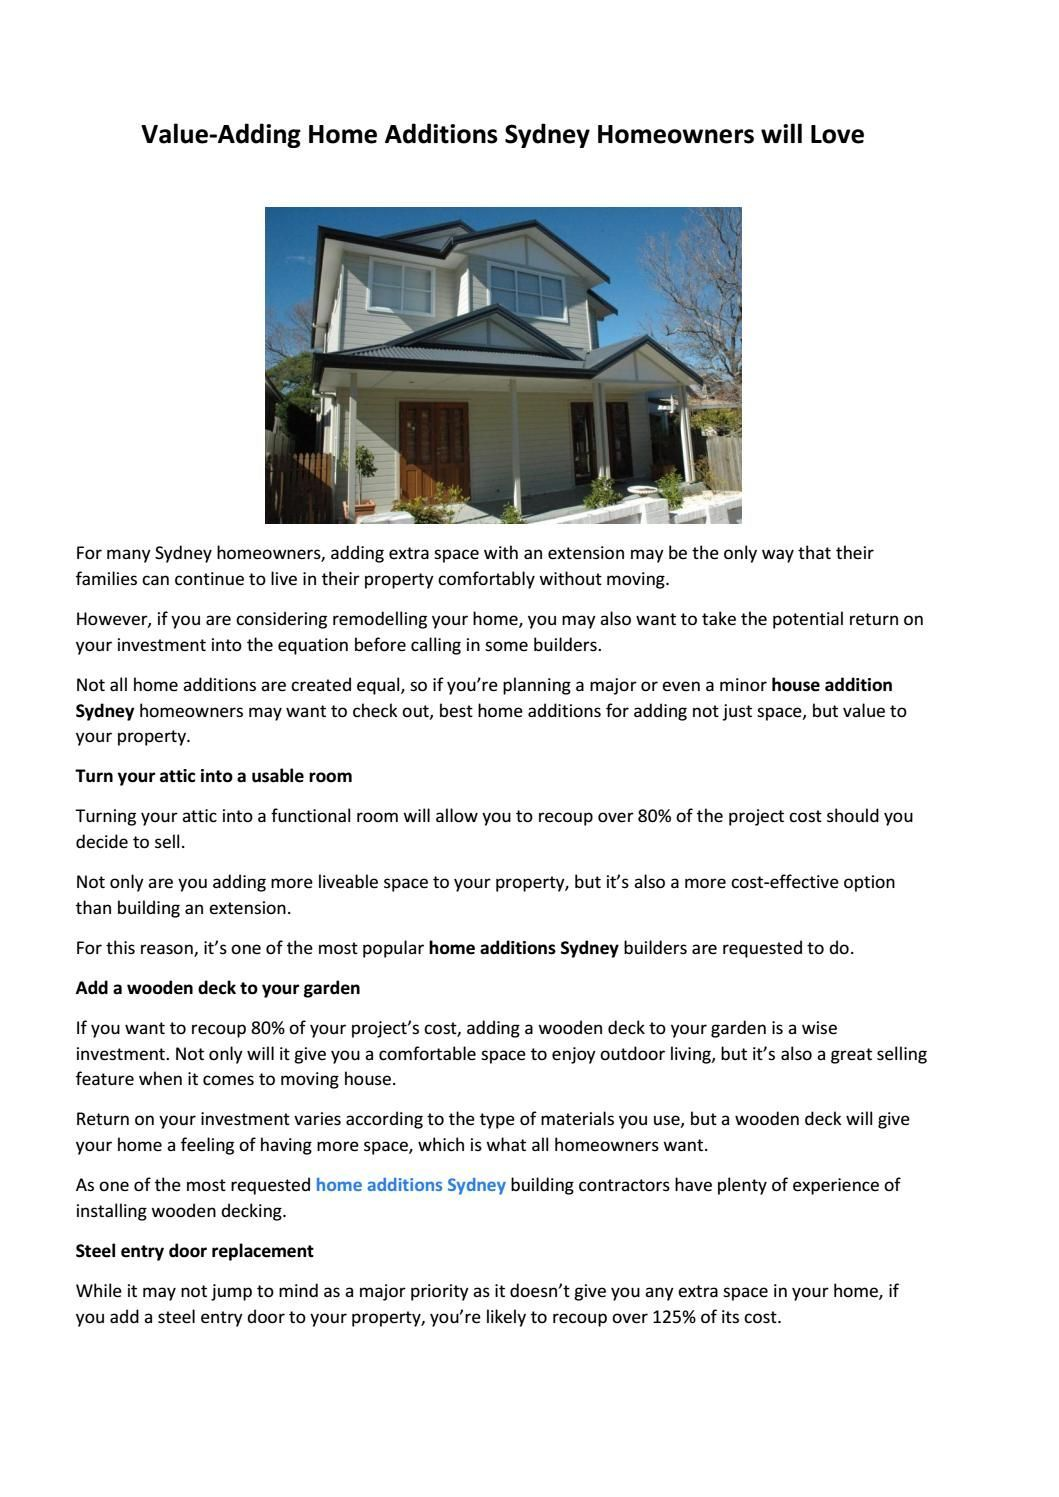 Value Adding Home Additions Homeowners Will Love Renovating Whether You Are A Homeowner Or Builder Planning